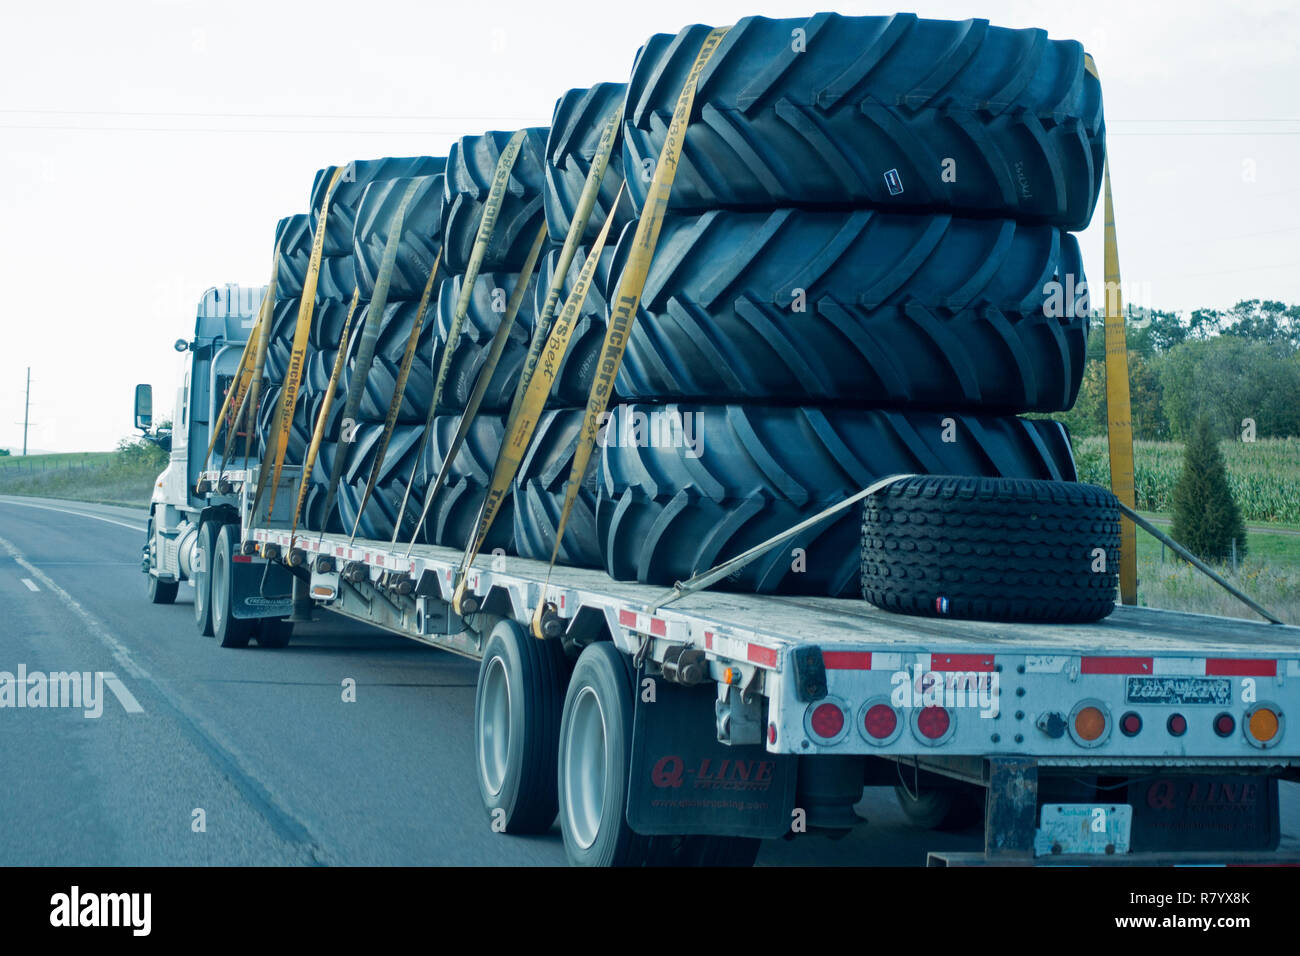 Truck hauling tires for large machines on Freeway 94 Minnesota MN USA - Stock Image